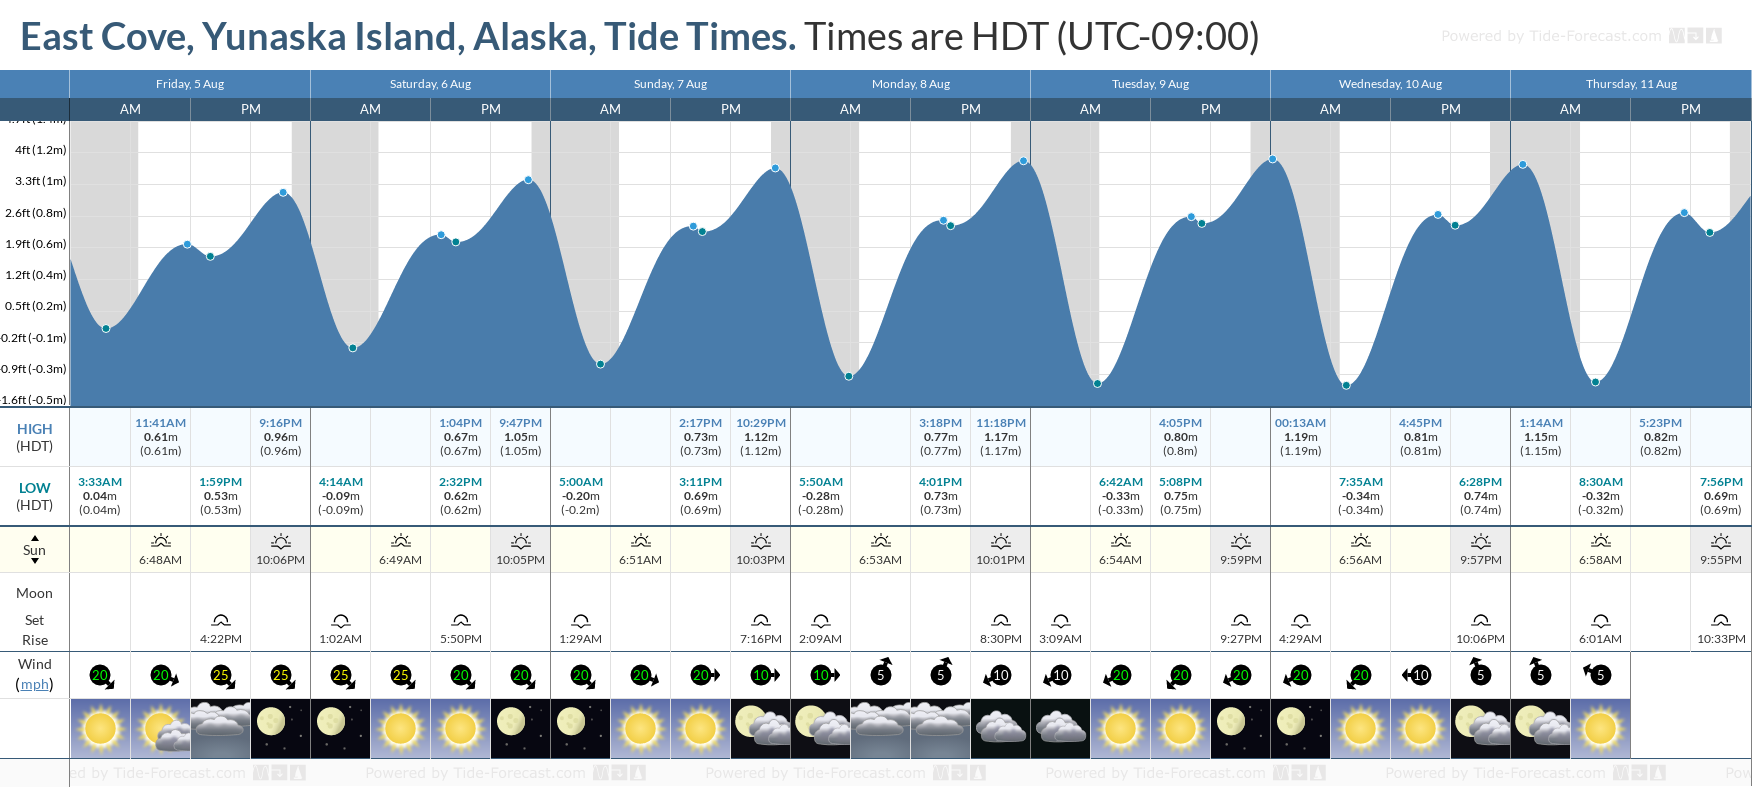 East Cove, Yunaska Island, Alaska Tide Chart including high and low tide tide times for the next 7 days